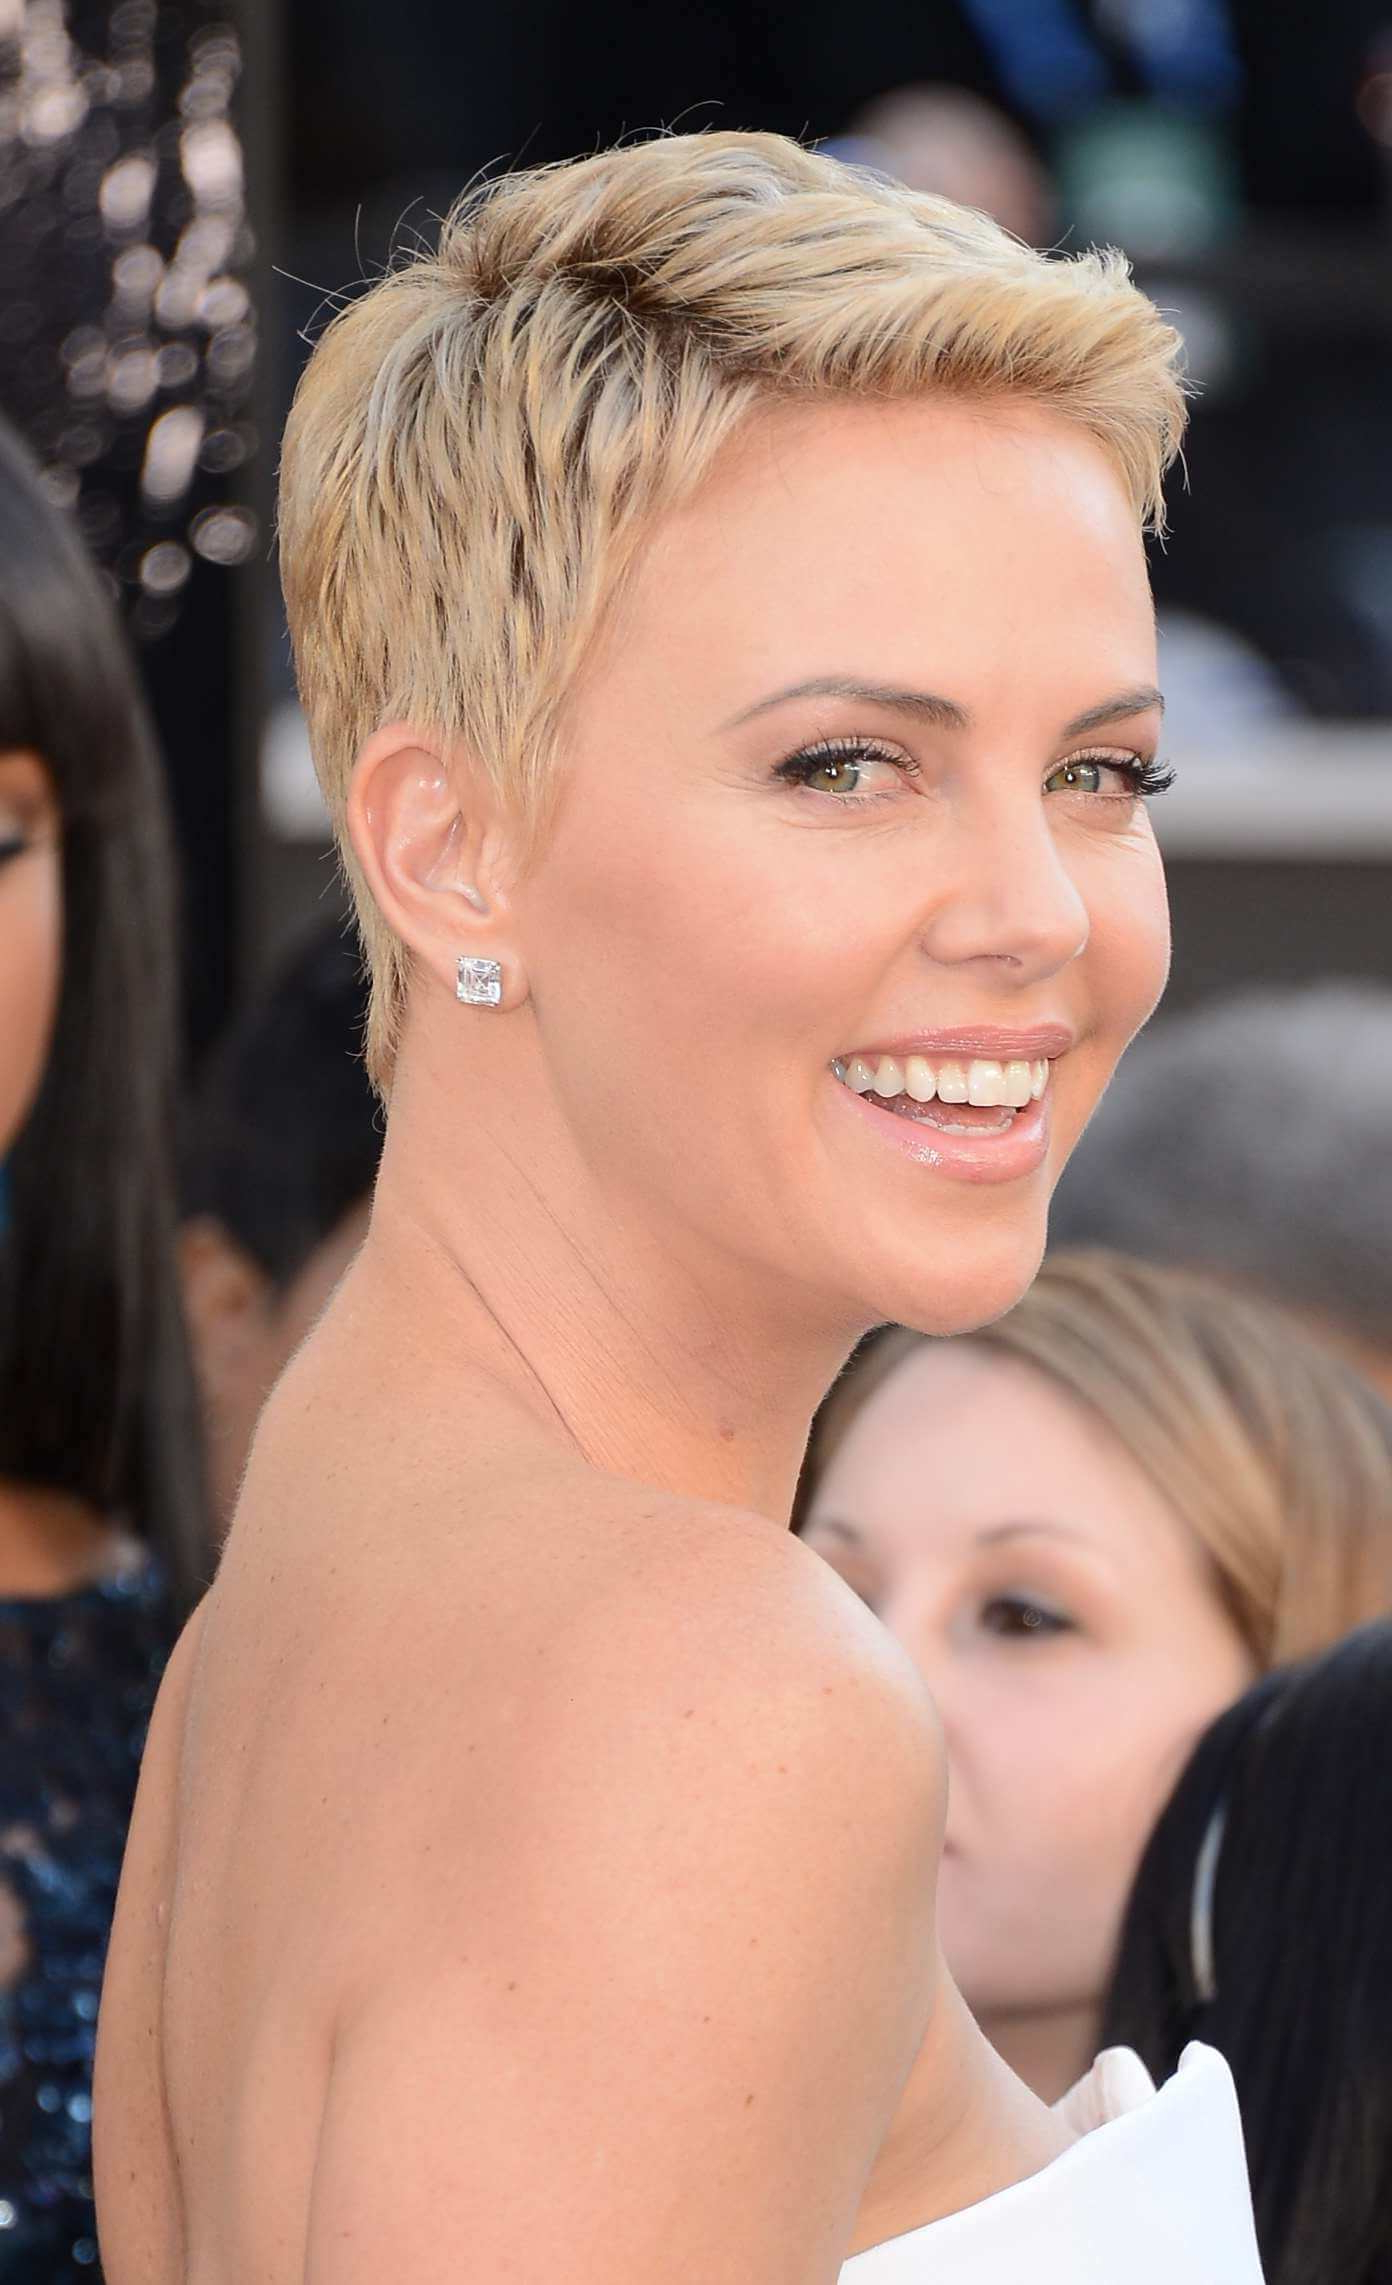 Short Pixie Haircuts For Fine Thin Hair – Short And Cuts Hairstyles Inside Short Haircuts For Thin Wavy Hair (View 25 of 25)